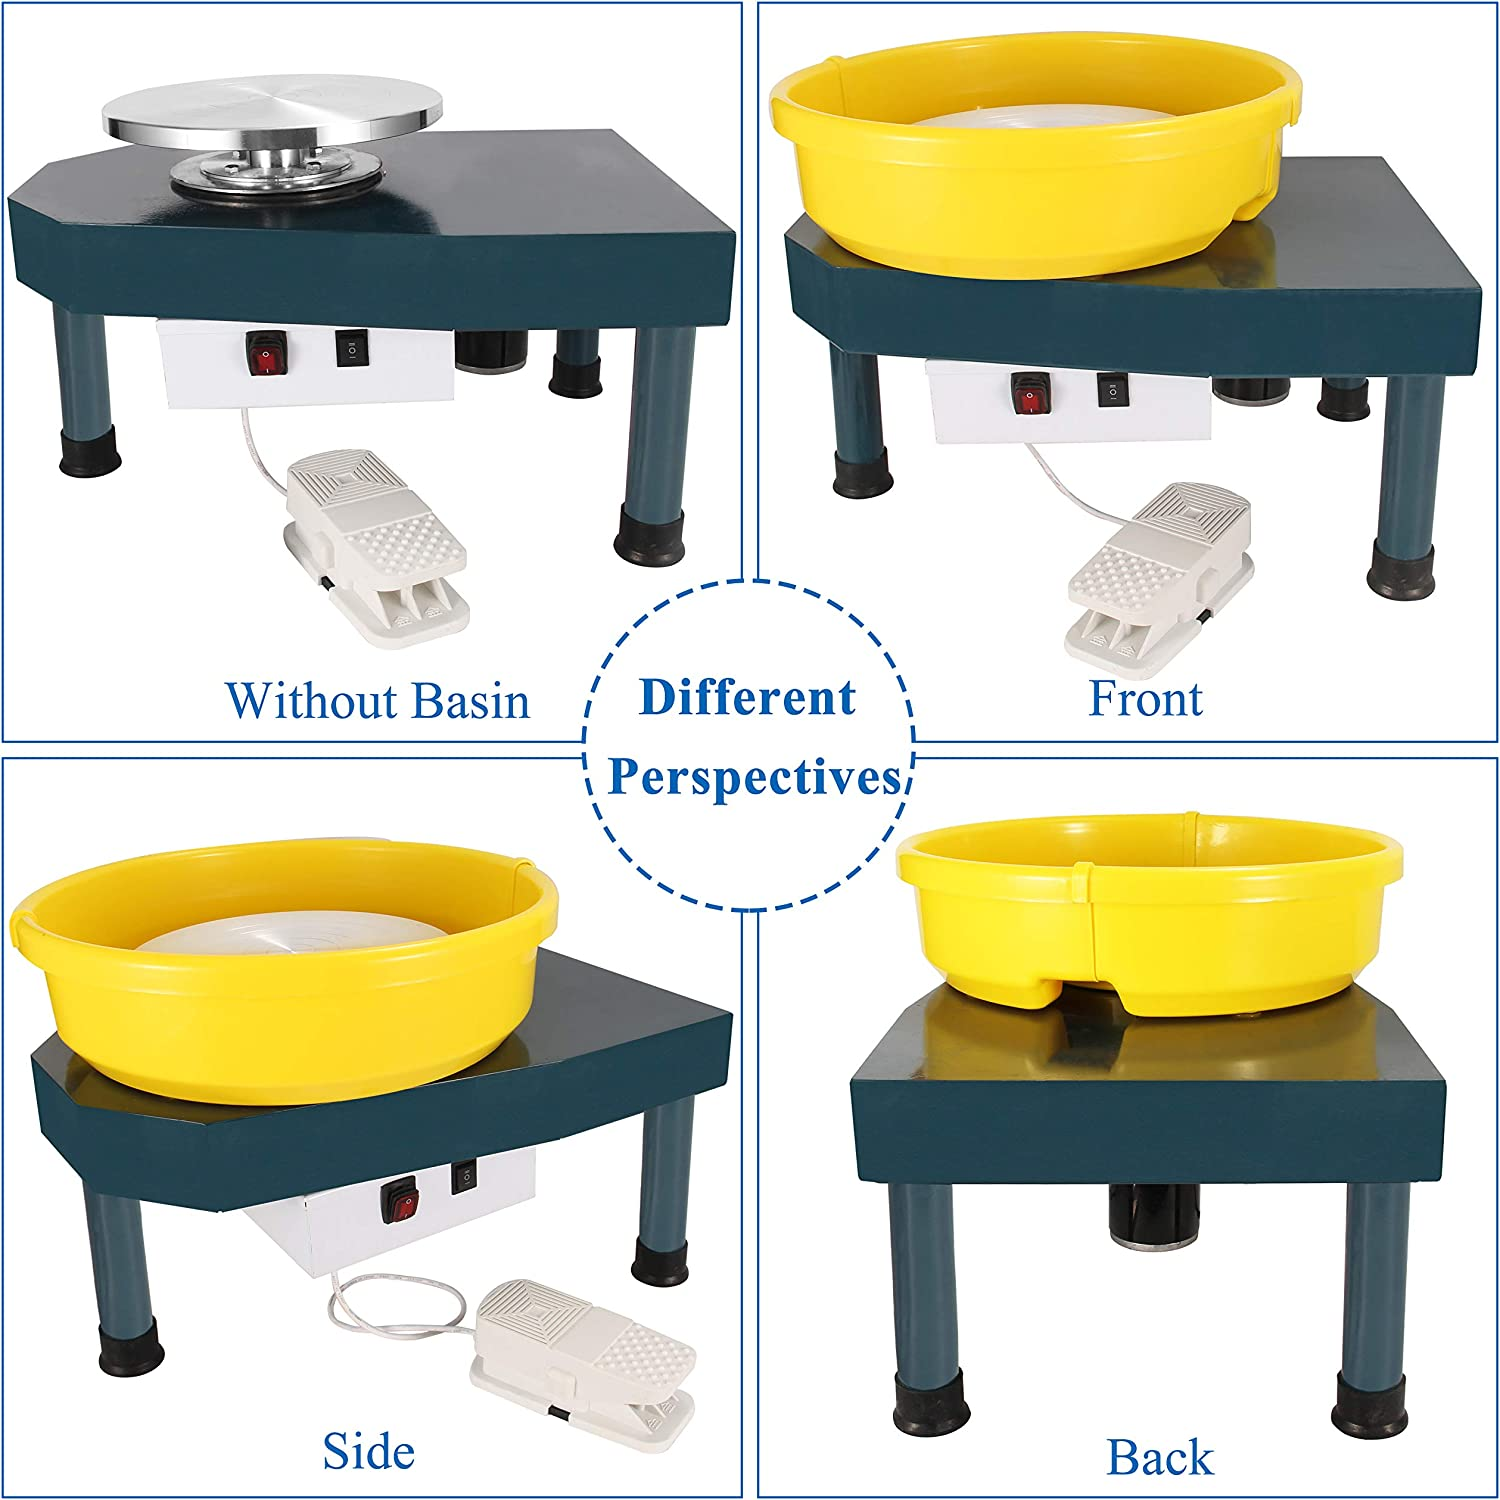 Huanyu Pottery Machine Ceramic Machine Pottery Wheel 250W 30CM Pottery Forming Machine with Foot Pedal and Detachable Basin 110V, Ordinary Type